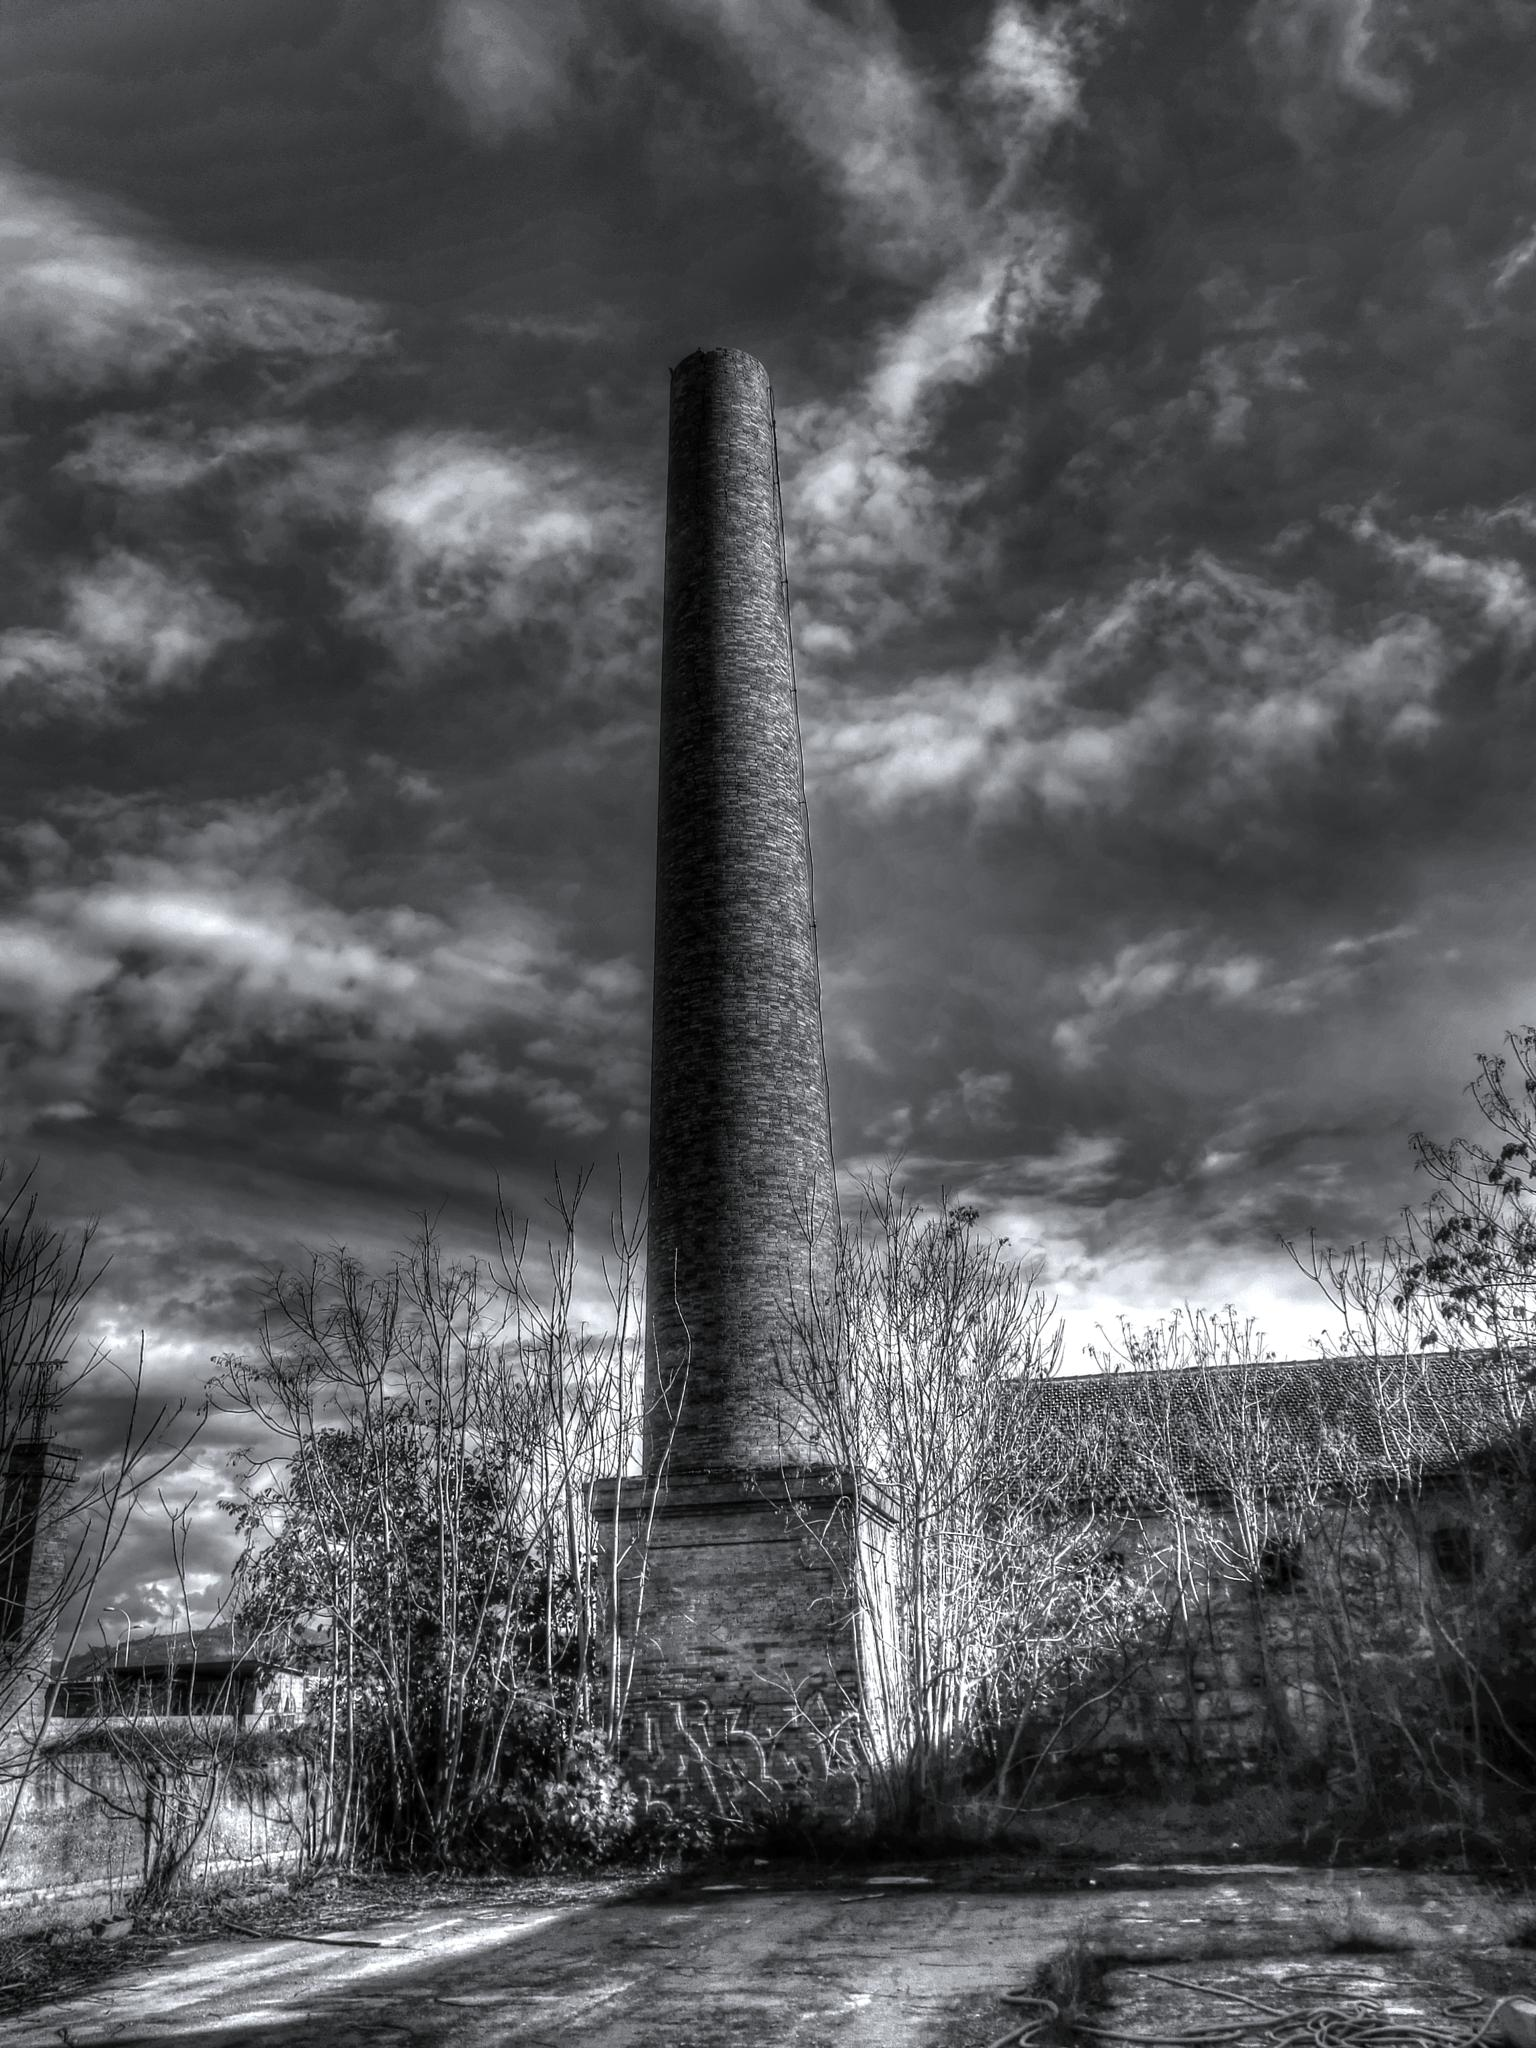 The Chimney by SteveR